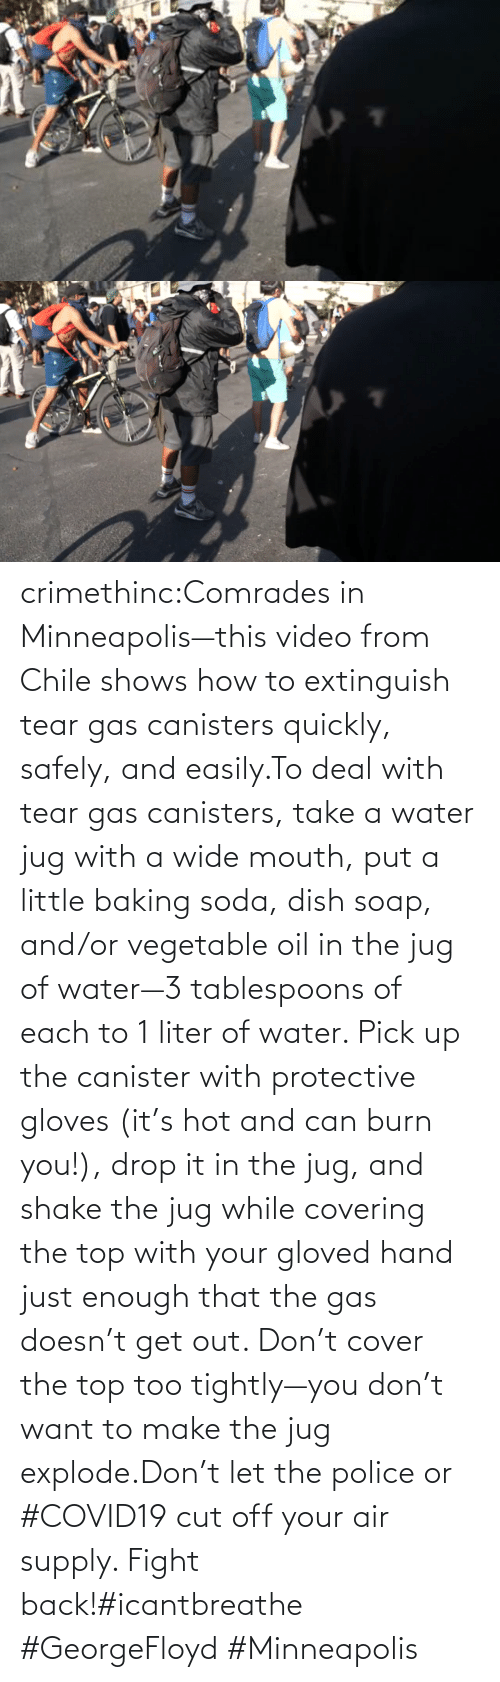 Quickly: crimethinc:Comrades in Minneapolis—this video from Chile shows how to extinguish tear gas canisters quickly, safely, and easily.To deal with tear gas canisters, take a water jug with a wide mouth, put a little baking soda, dish soap, and/or vegetable oil in the jug of water—3 tablespoons of each to 1 liter of water. Pick up the canister with protective gloves (it's hot and can burn you!), drop it in the jug, and shake the jug while covering the top with your gloved hand just enough that the gas doesn't get out. Don't cover the top too tightly—you don't want to make the jug explode.Don't let the police or #COVID19 cut off your air supply. Fight back!#icantbreathe #GeorgeFloyd #Minneapolis